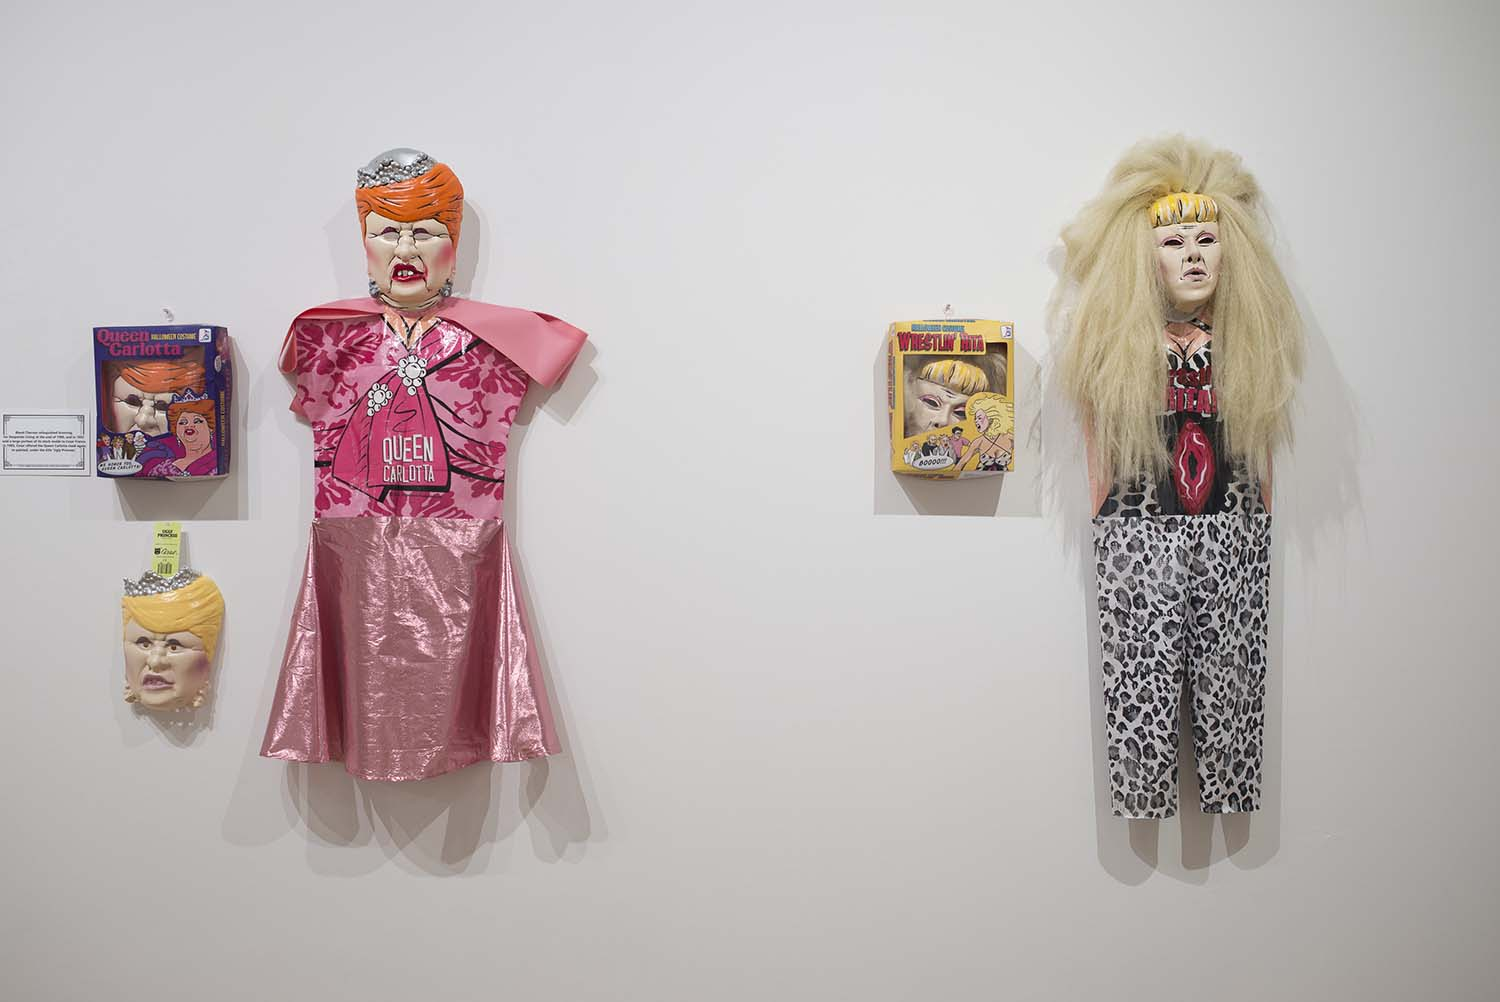 two costumes hanging in a gallery